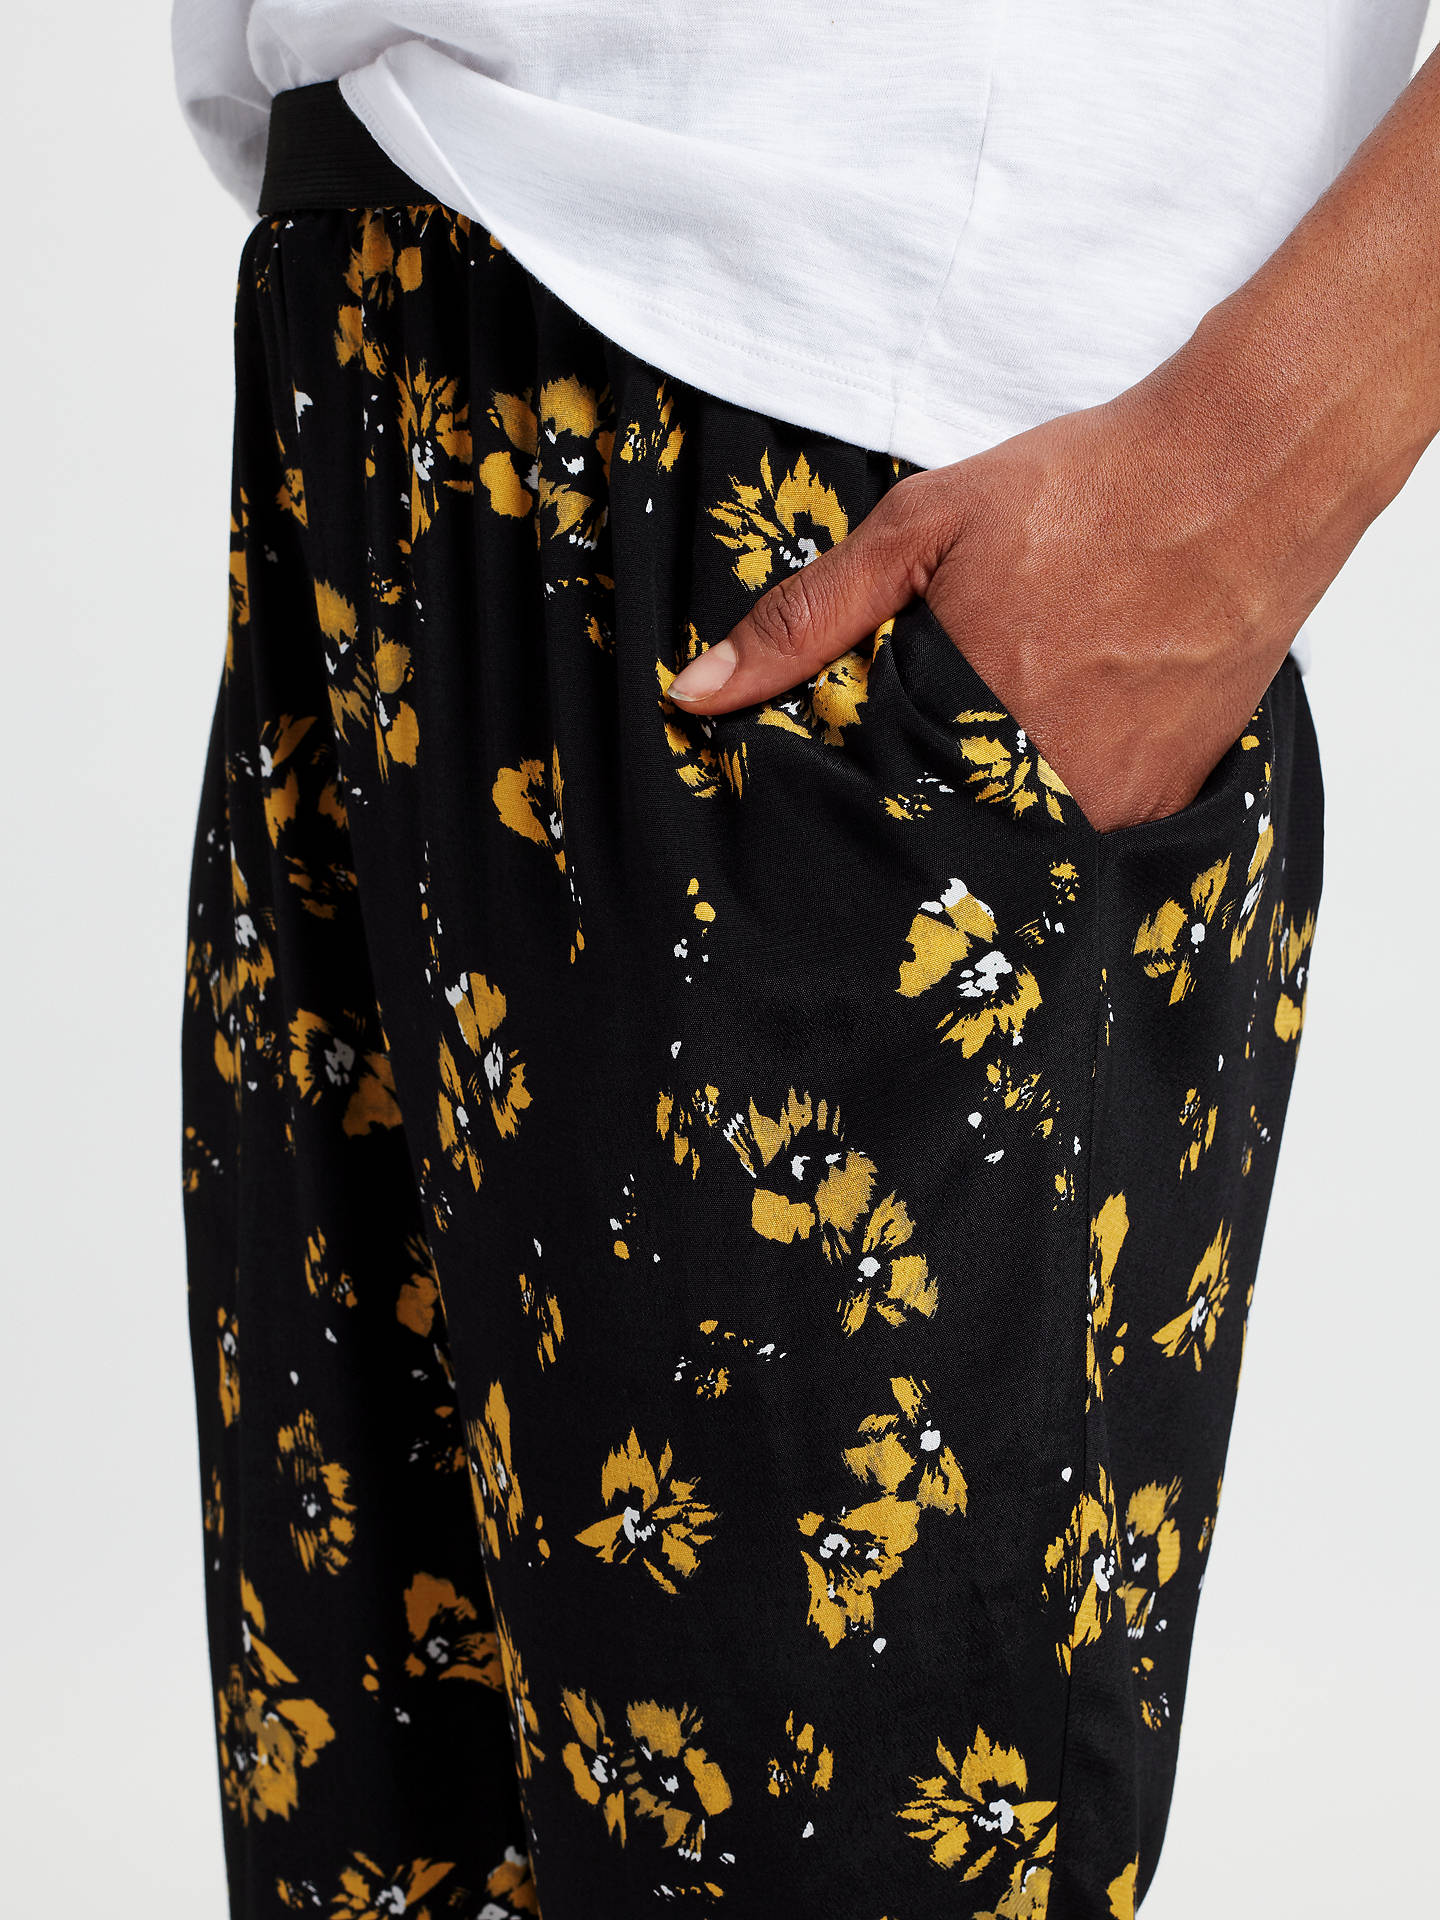 BuyCollection WEEKEND by John Lewis Artist Brush Stroke Floral Print Trousers, Black/Yellow, 8 Online at johnlewis.com